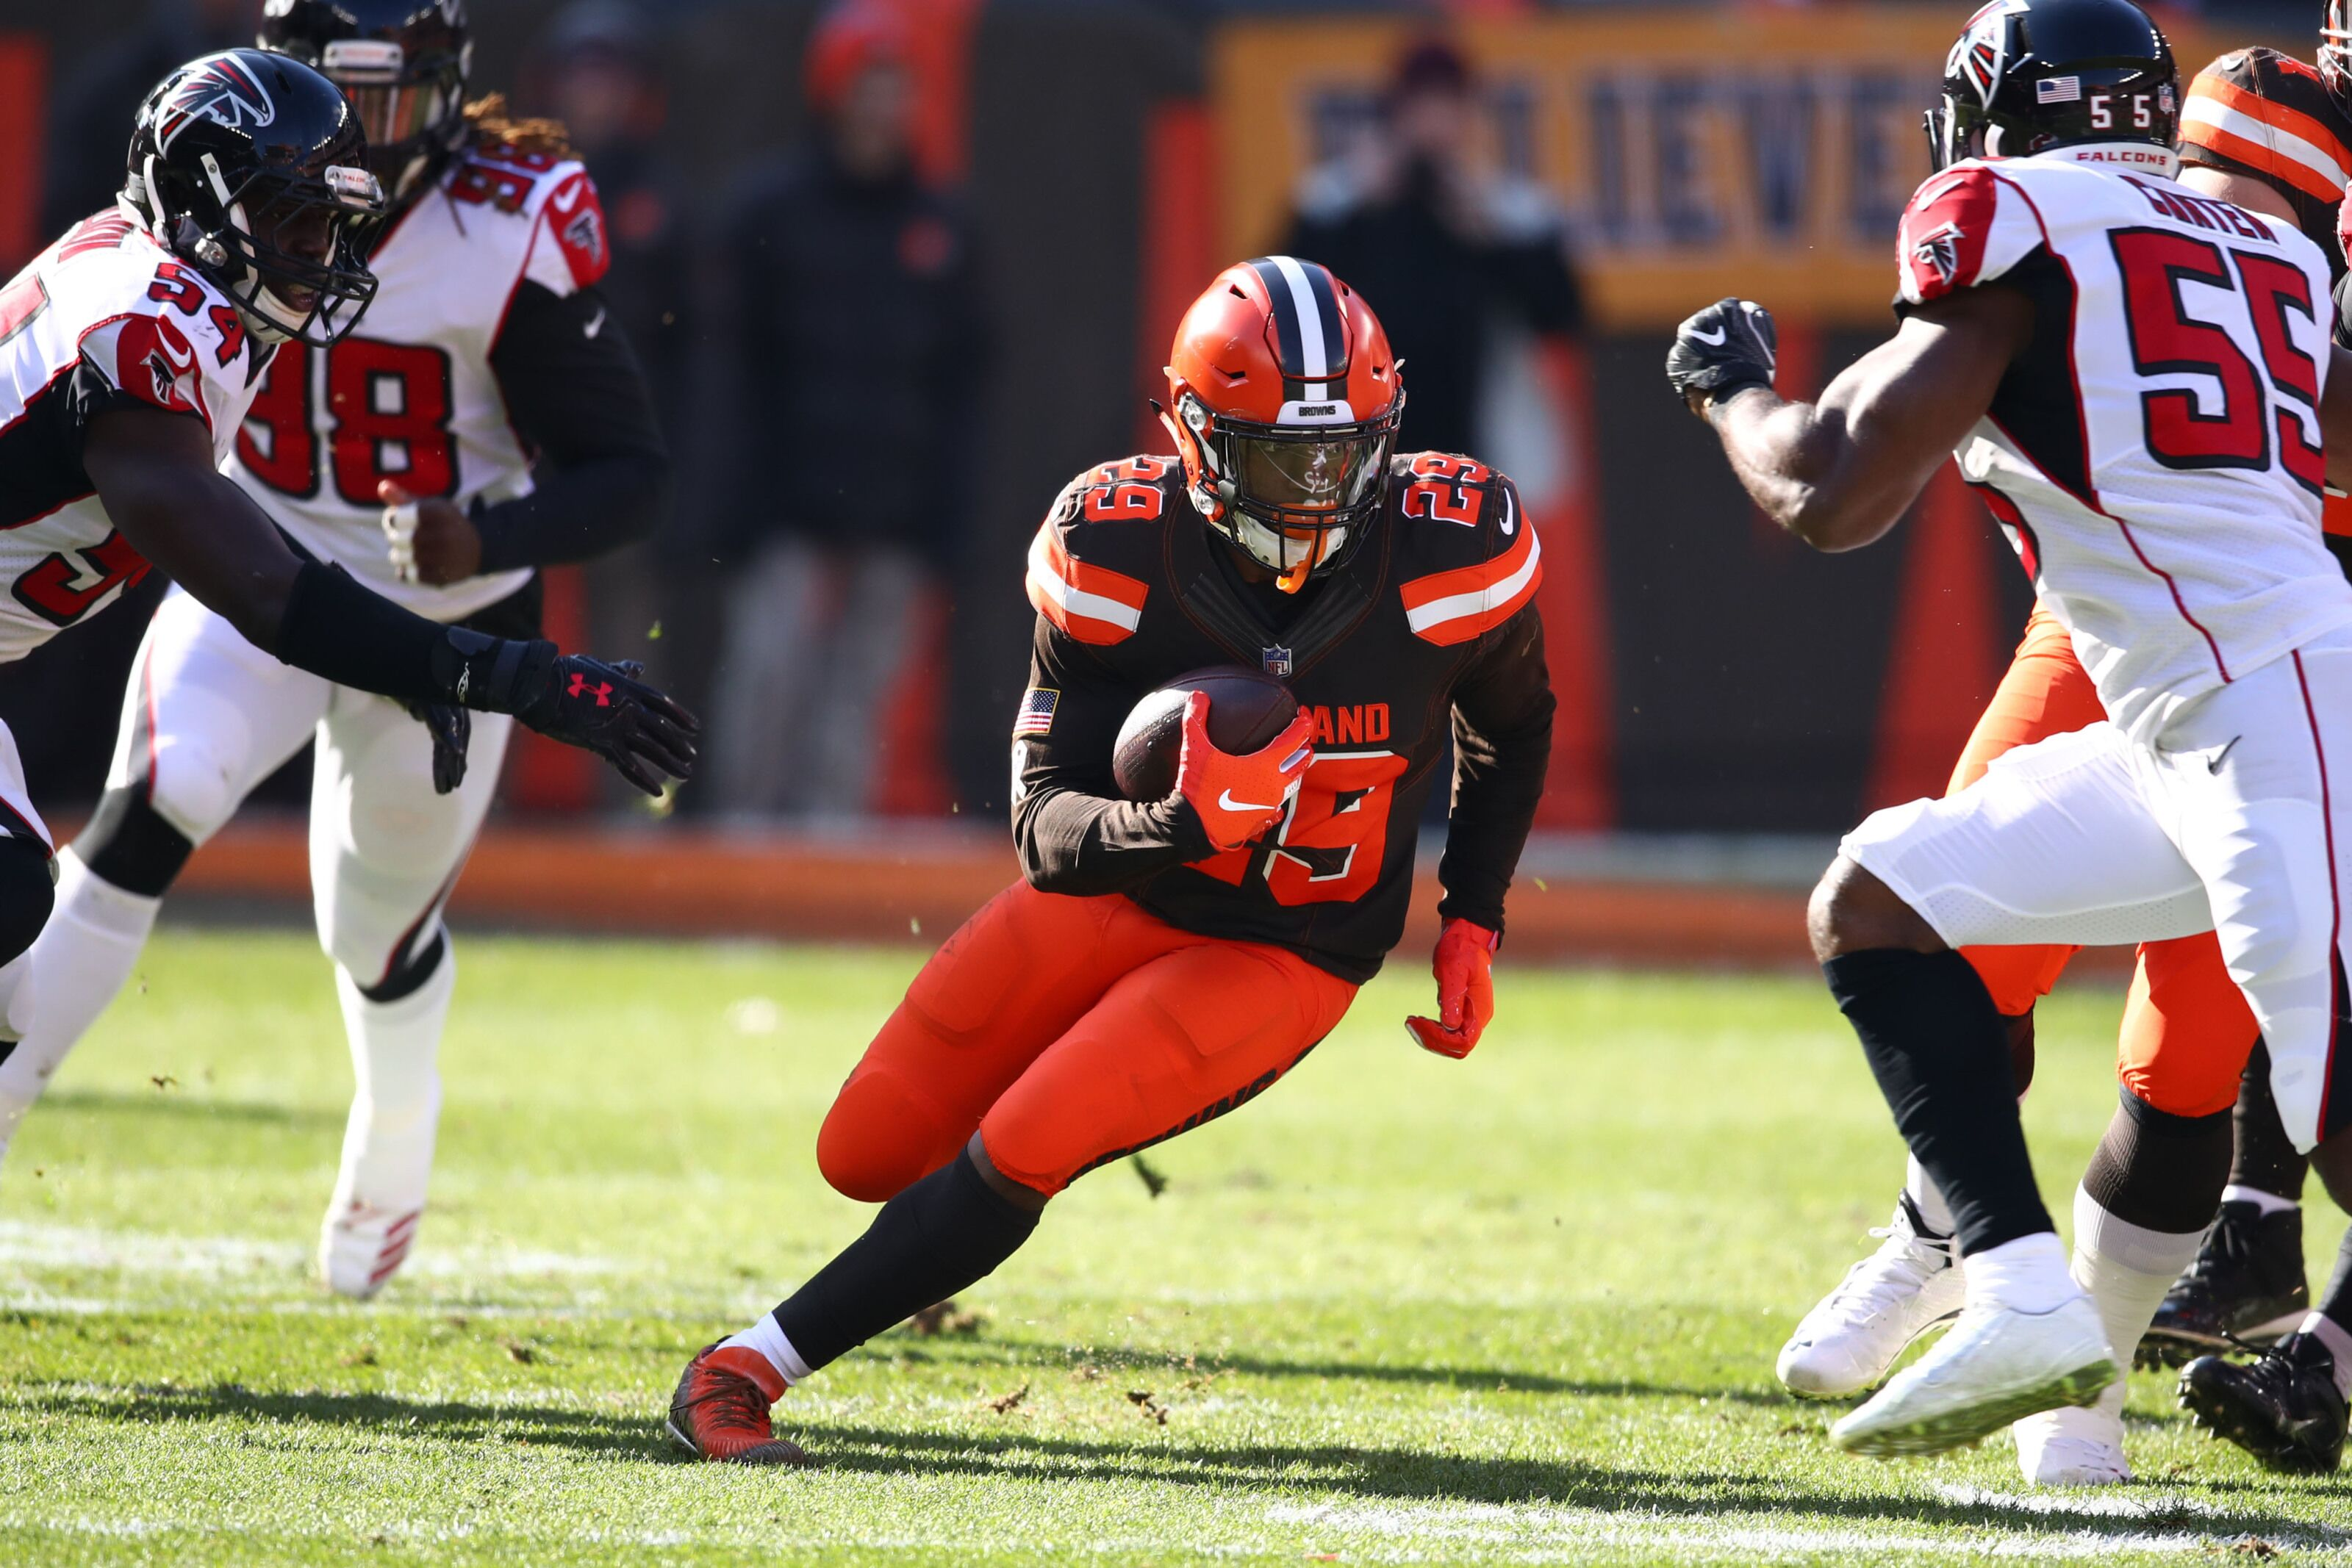 Cleveland Browns News: What is Duke Johnson's value?